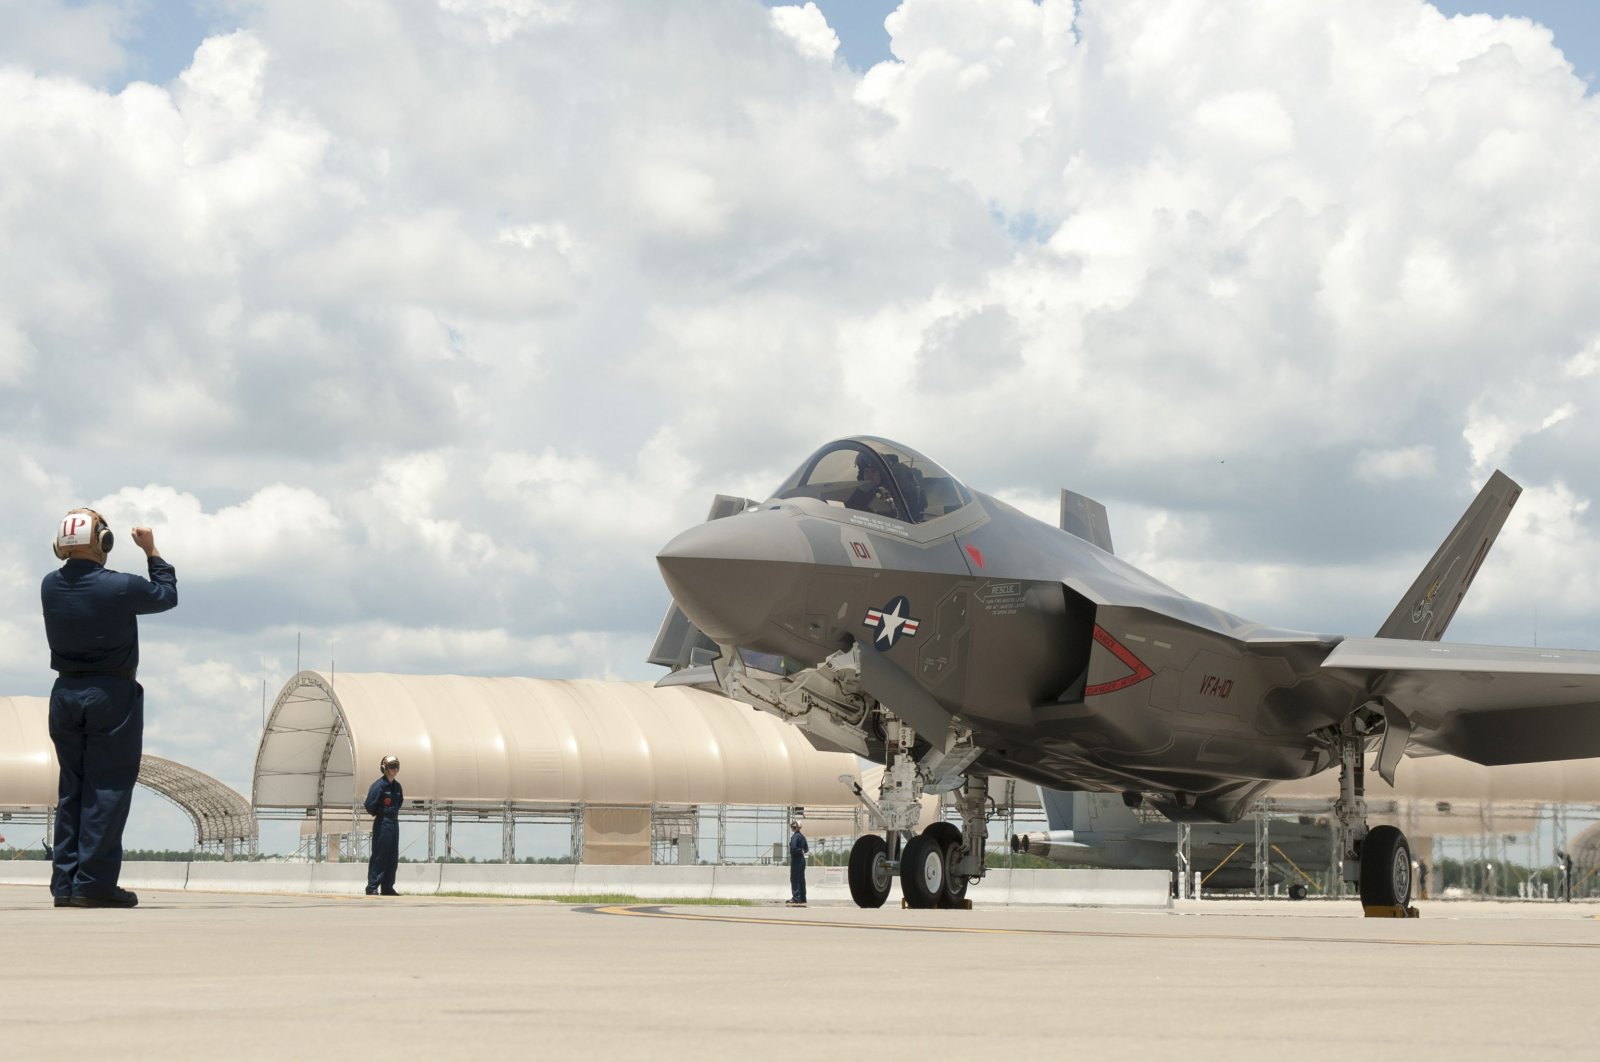 The new capabilities of the A/B/C variants of the F-35 Lightning II fighter jets under construction in Texas were presented to the press, New York, the U.S., Nov. 1, 2013. (Lockheed Martin via Anadolu Agency )